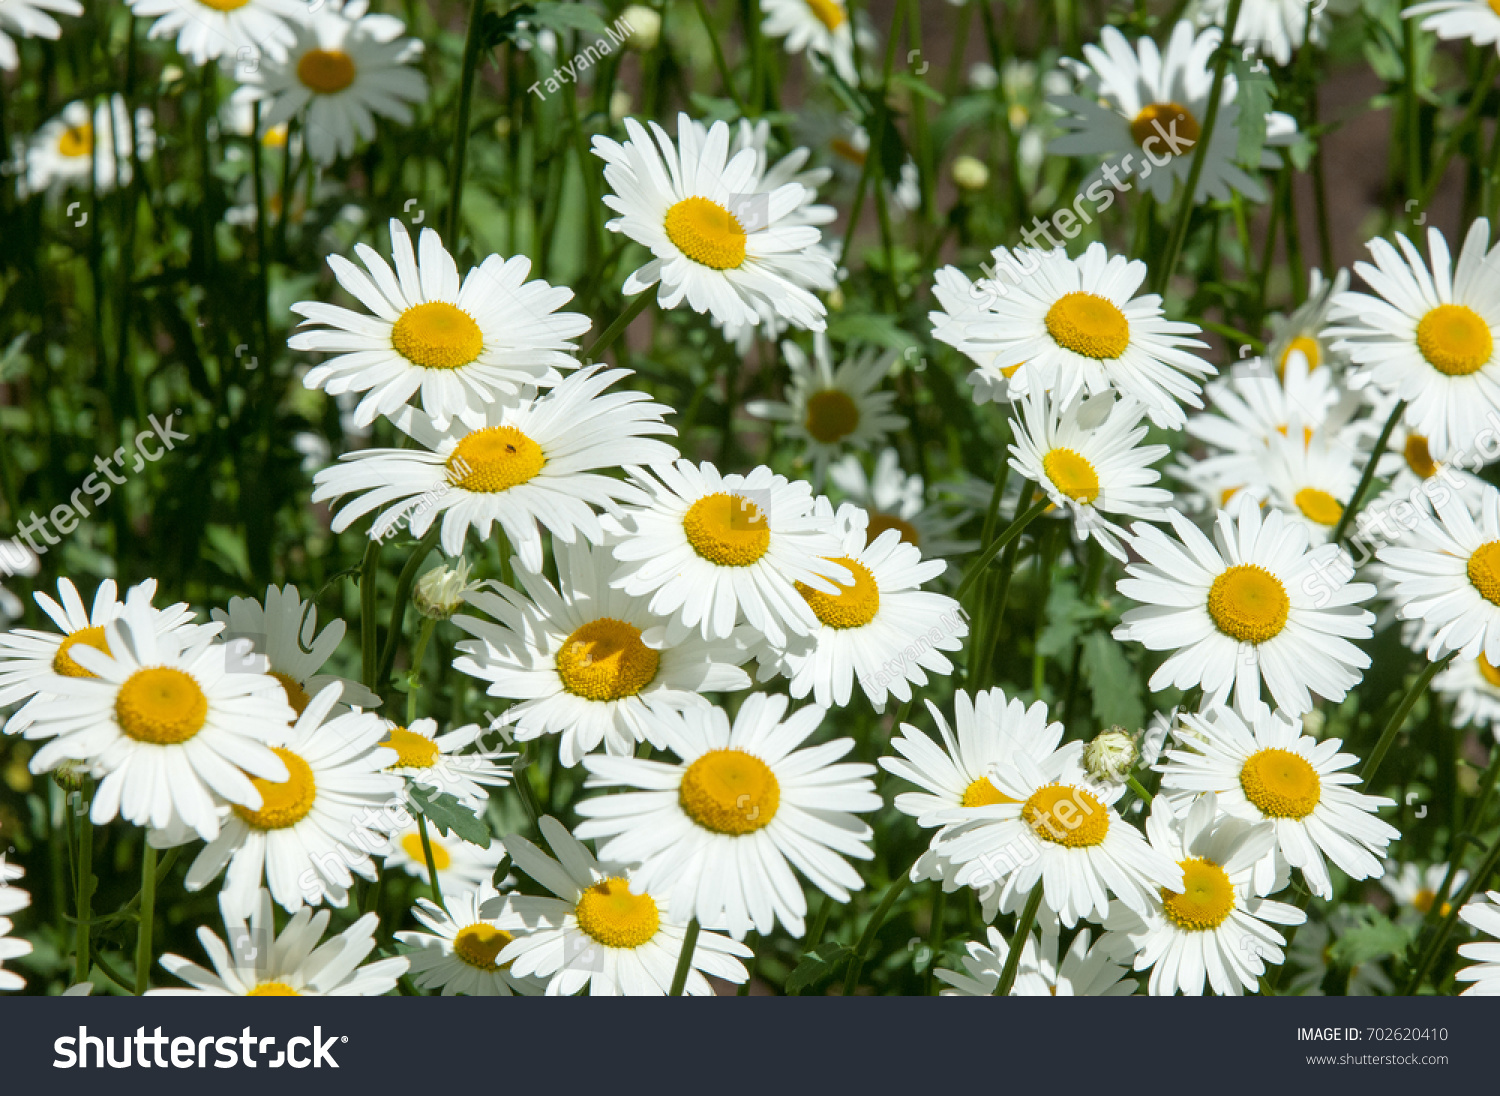 Summer Photos Flowers Daisies Aromatic European Stock Photo Edit